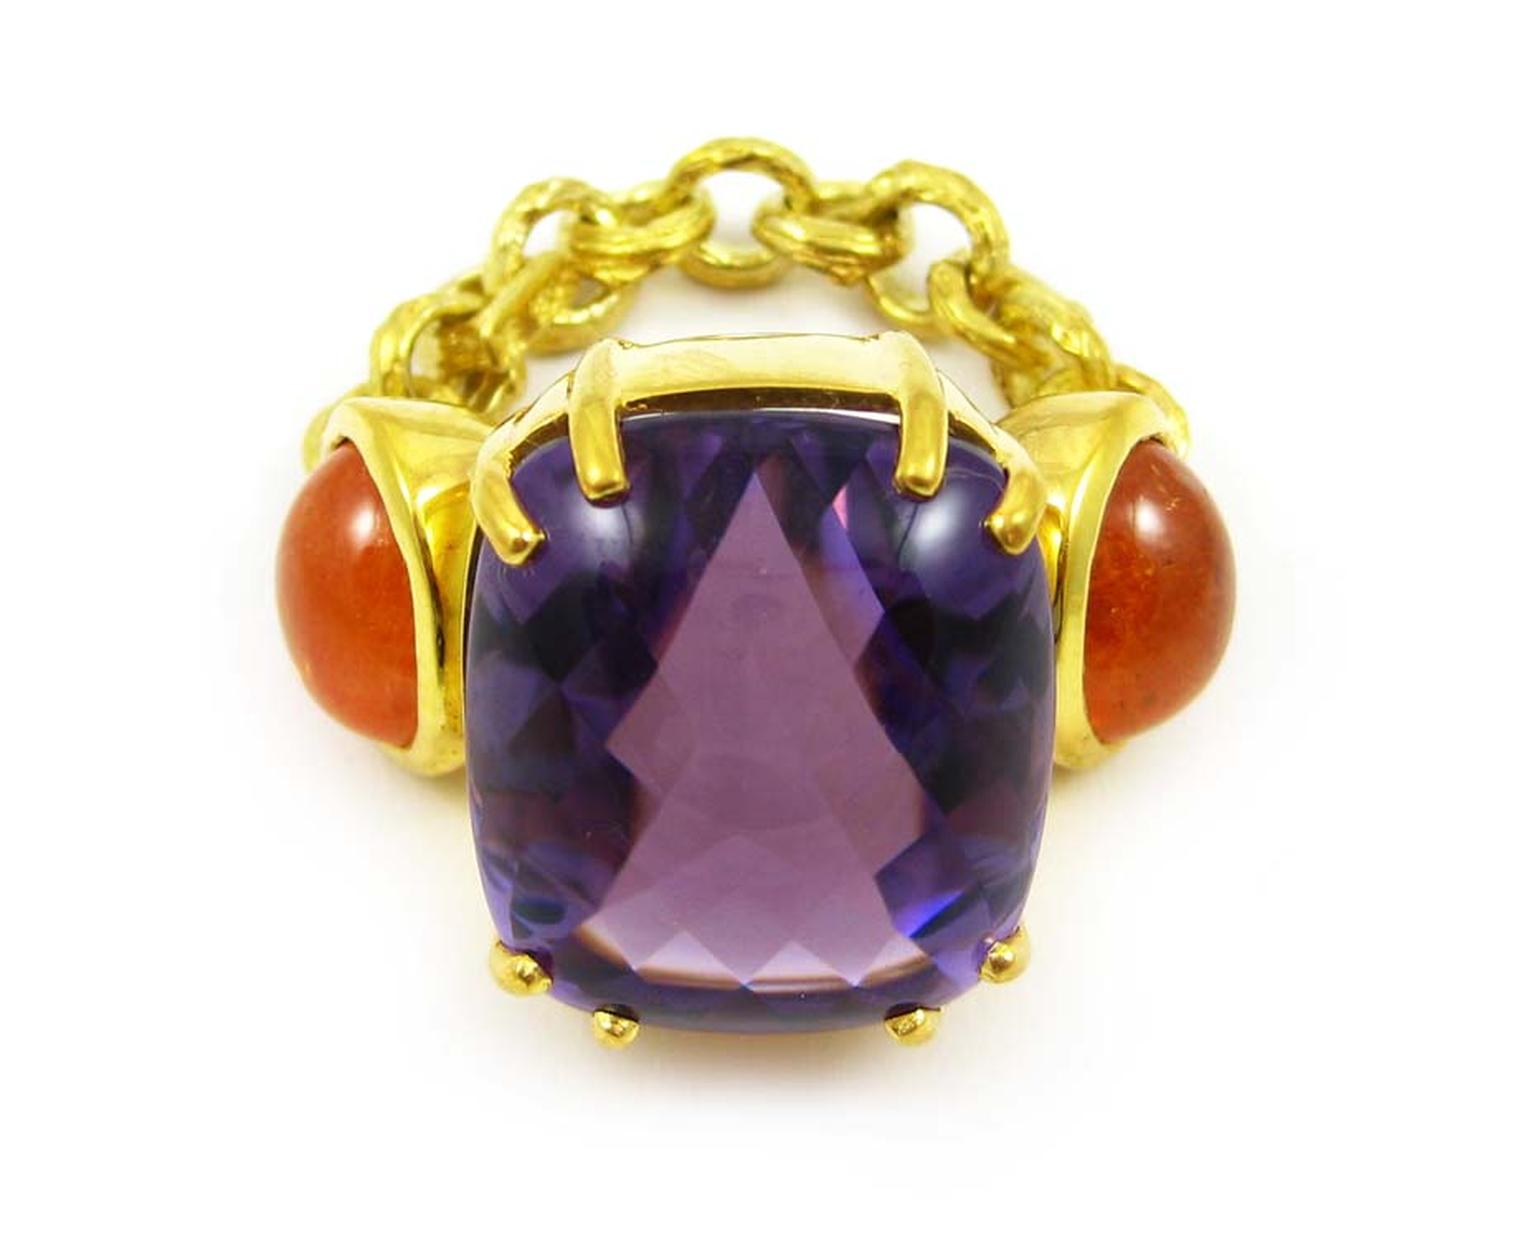 K. Brunini Chains of Love Twig ring in yellow gold with a central 30.86ct amethyst and two mandarin garnet cabochons ($15,320).